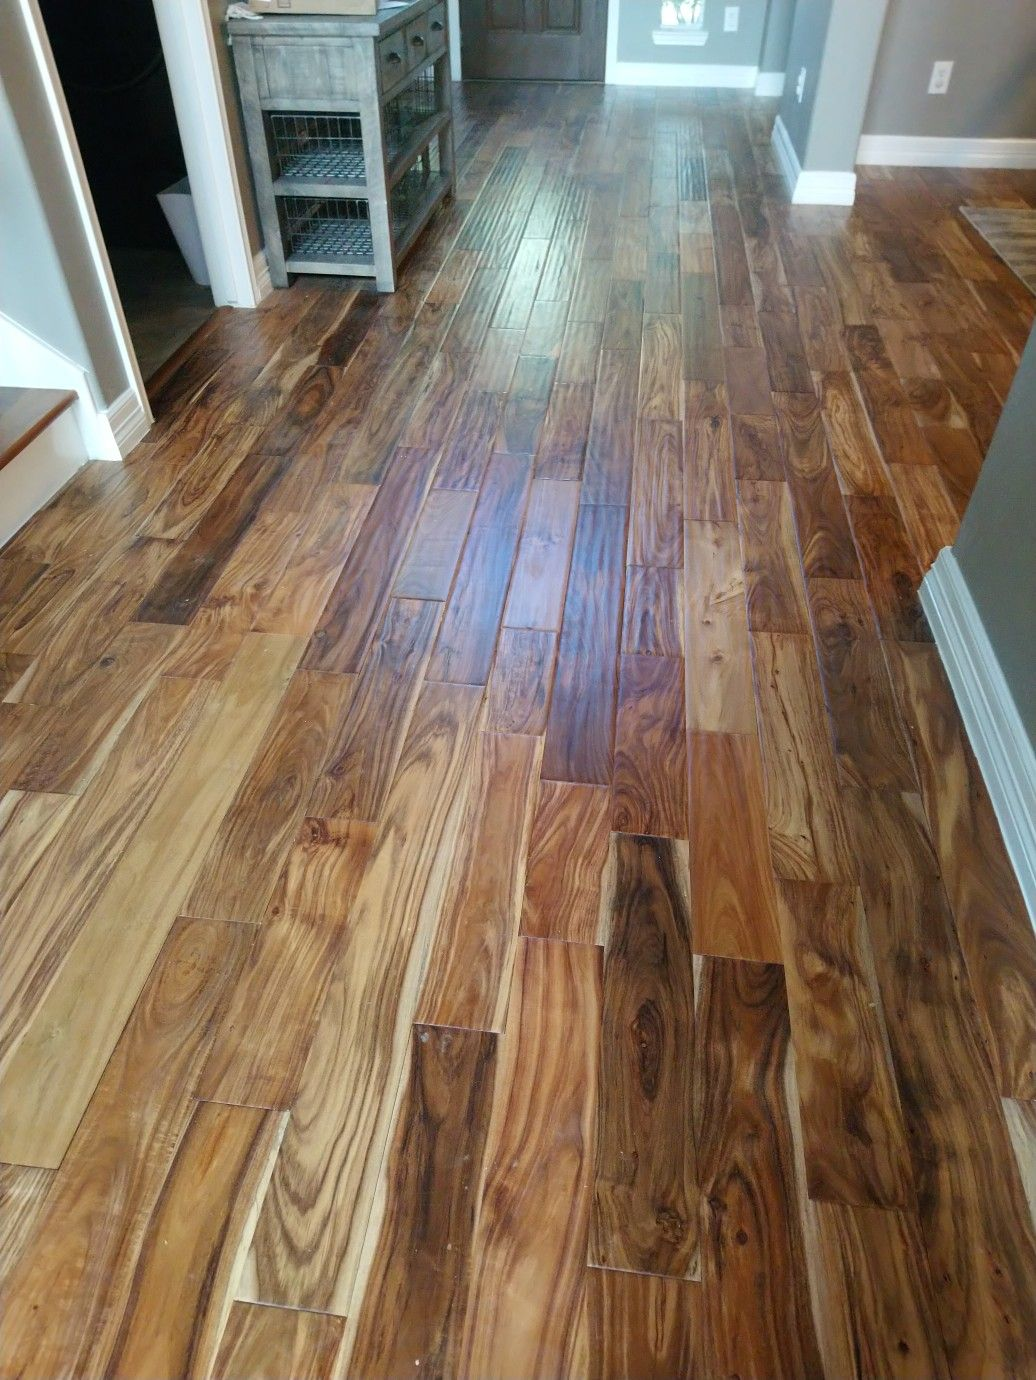 Solid locking Acacia hardwood flooring installed in Deer